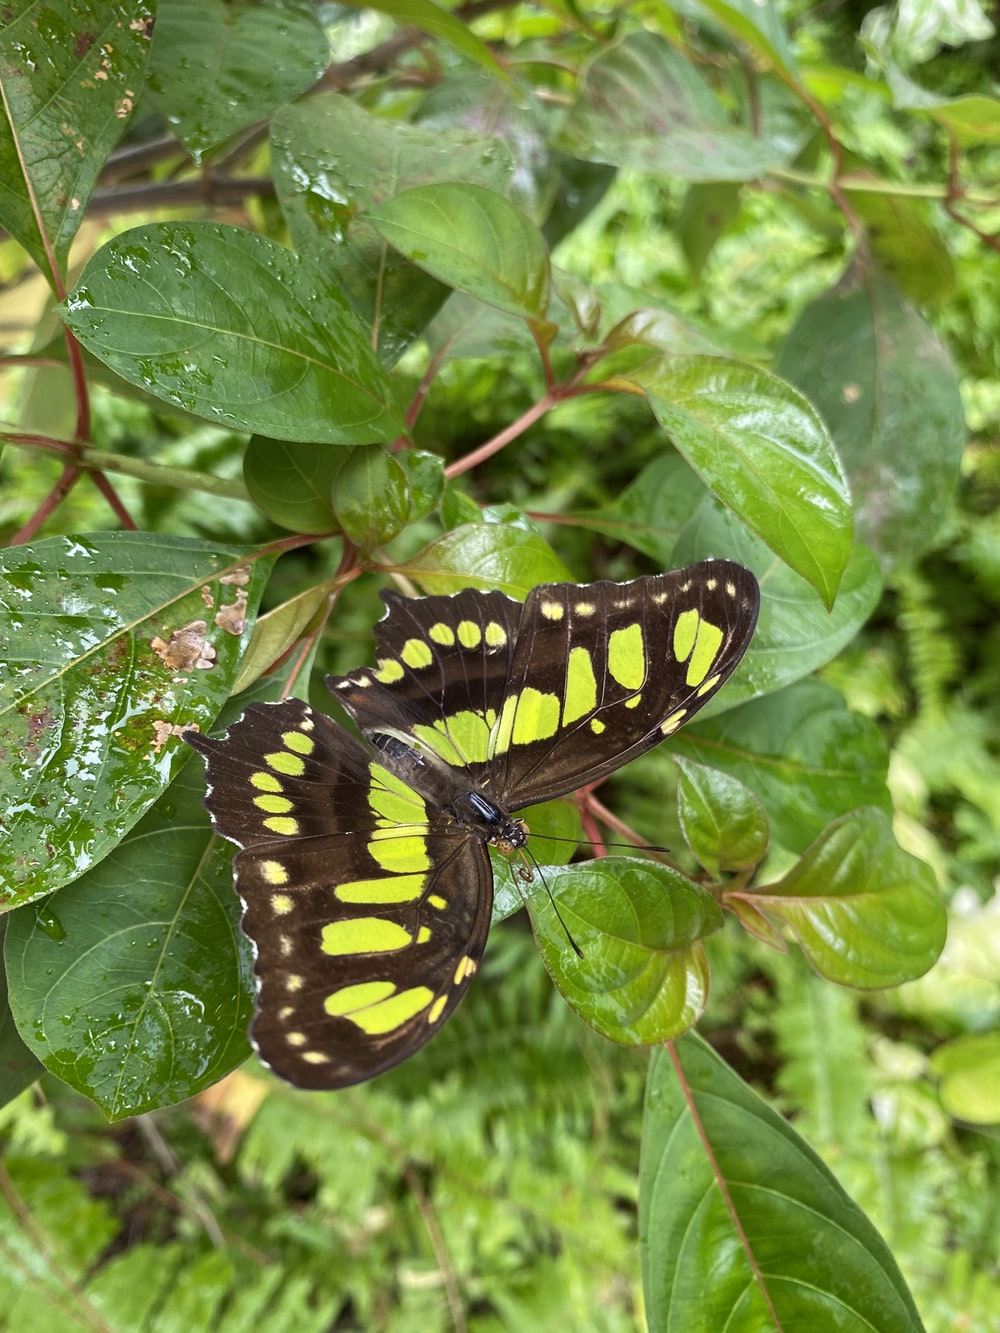 black and yellow butterfly on green leaf during daytime